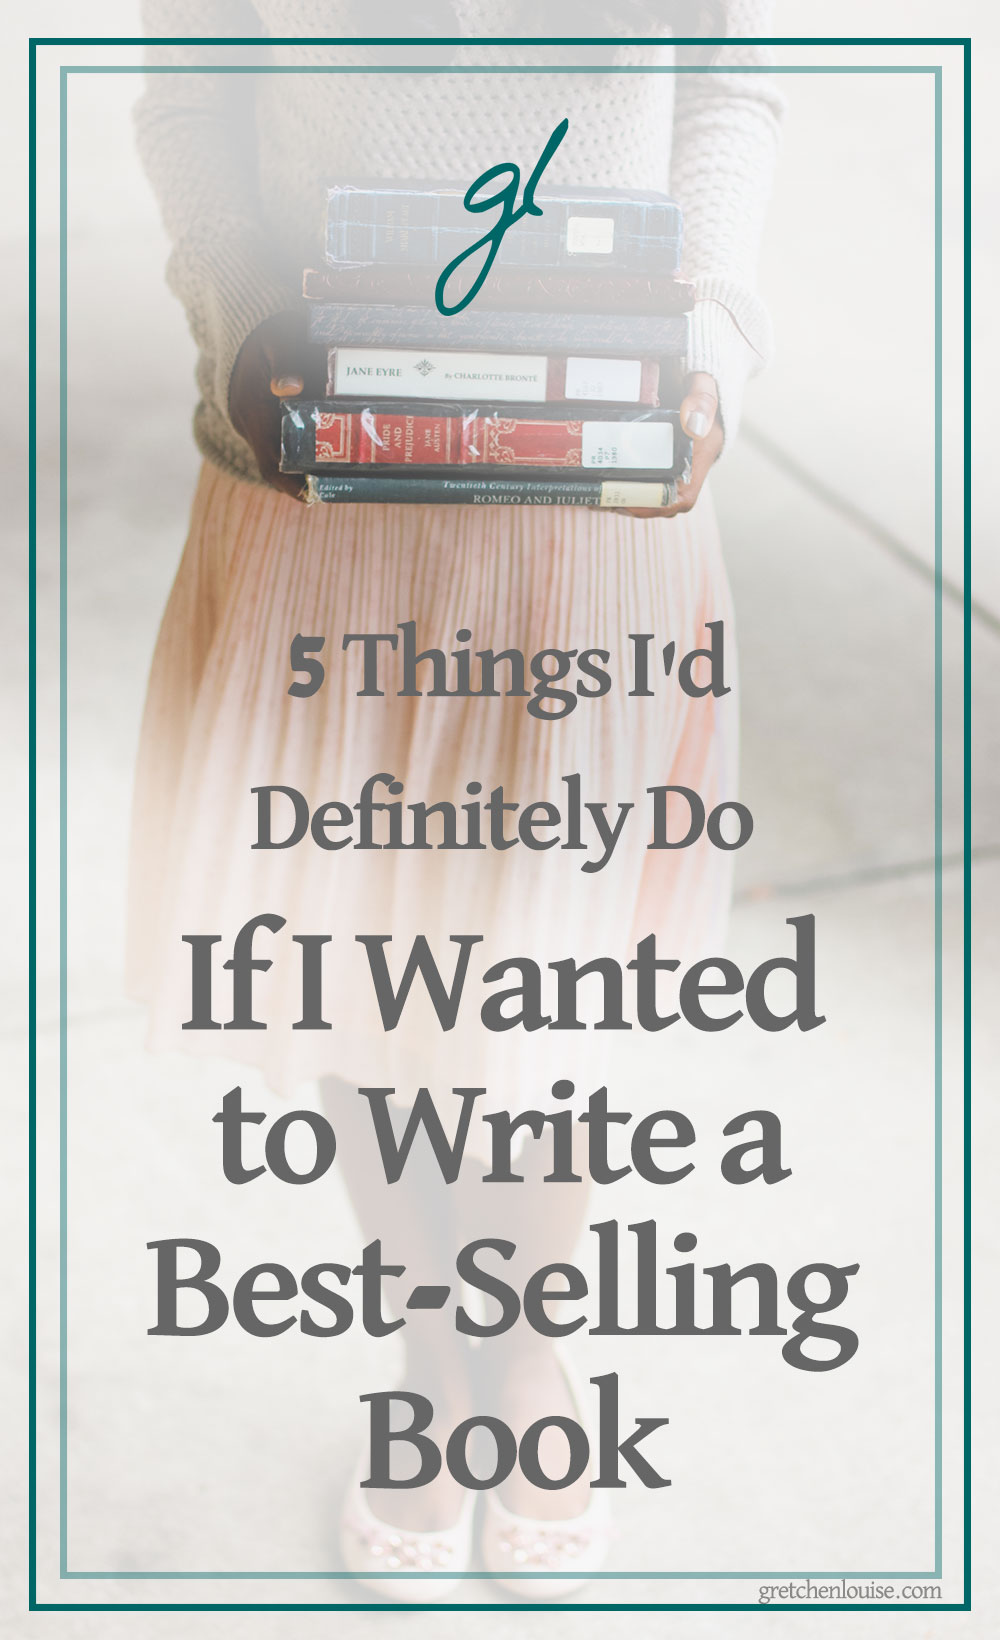 Wondering if you have a best-selling book in you? Interested in getting it traditionally published? Here are 5 things I'd definitely do if I wanted to write a best-selling book. via @GretLouise